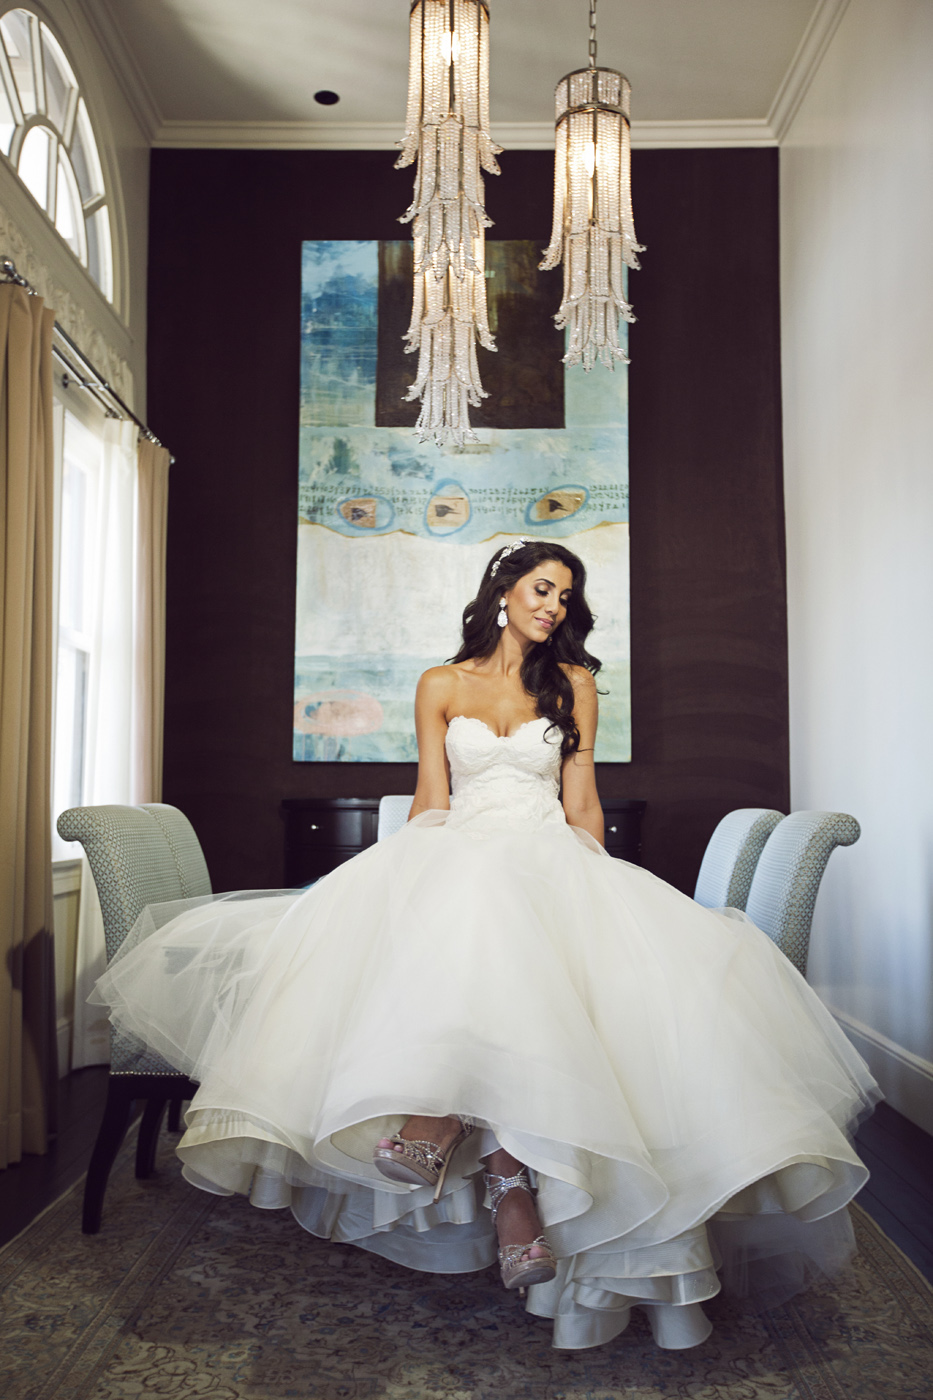 049DukePhotography_DukeImages_weddings_losangeles.jpg